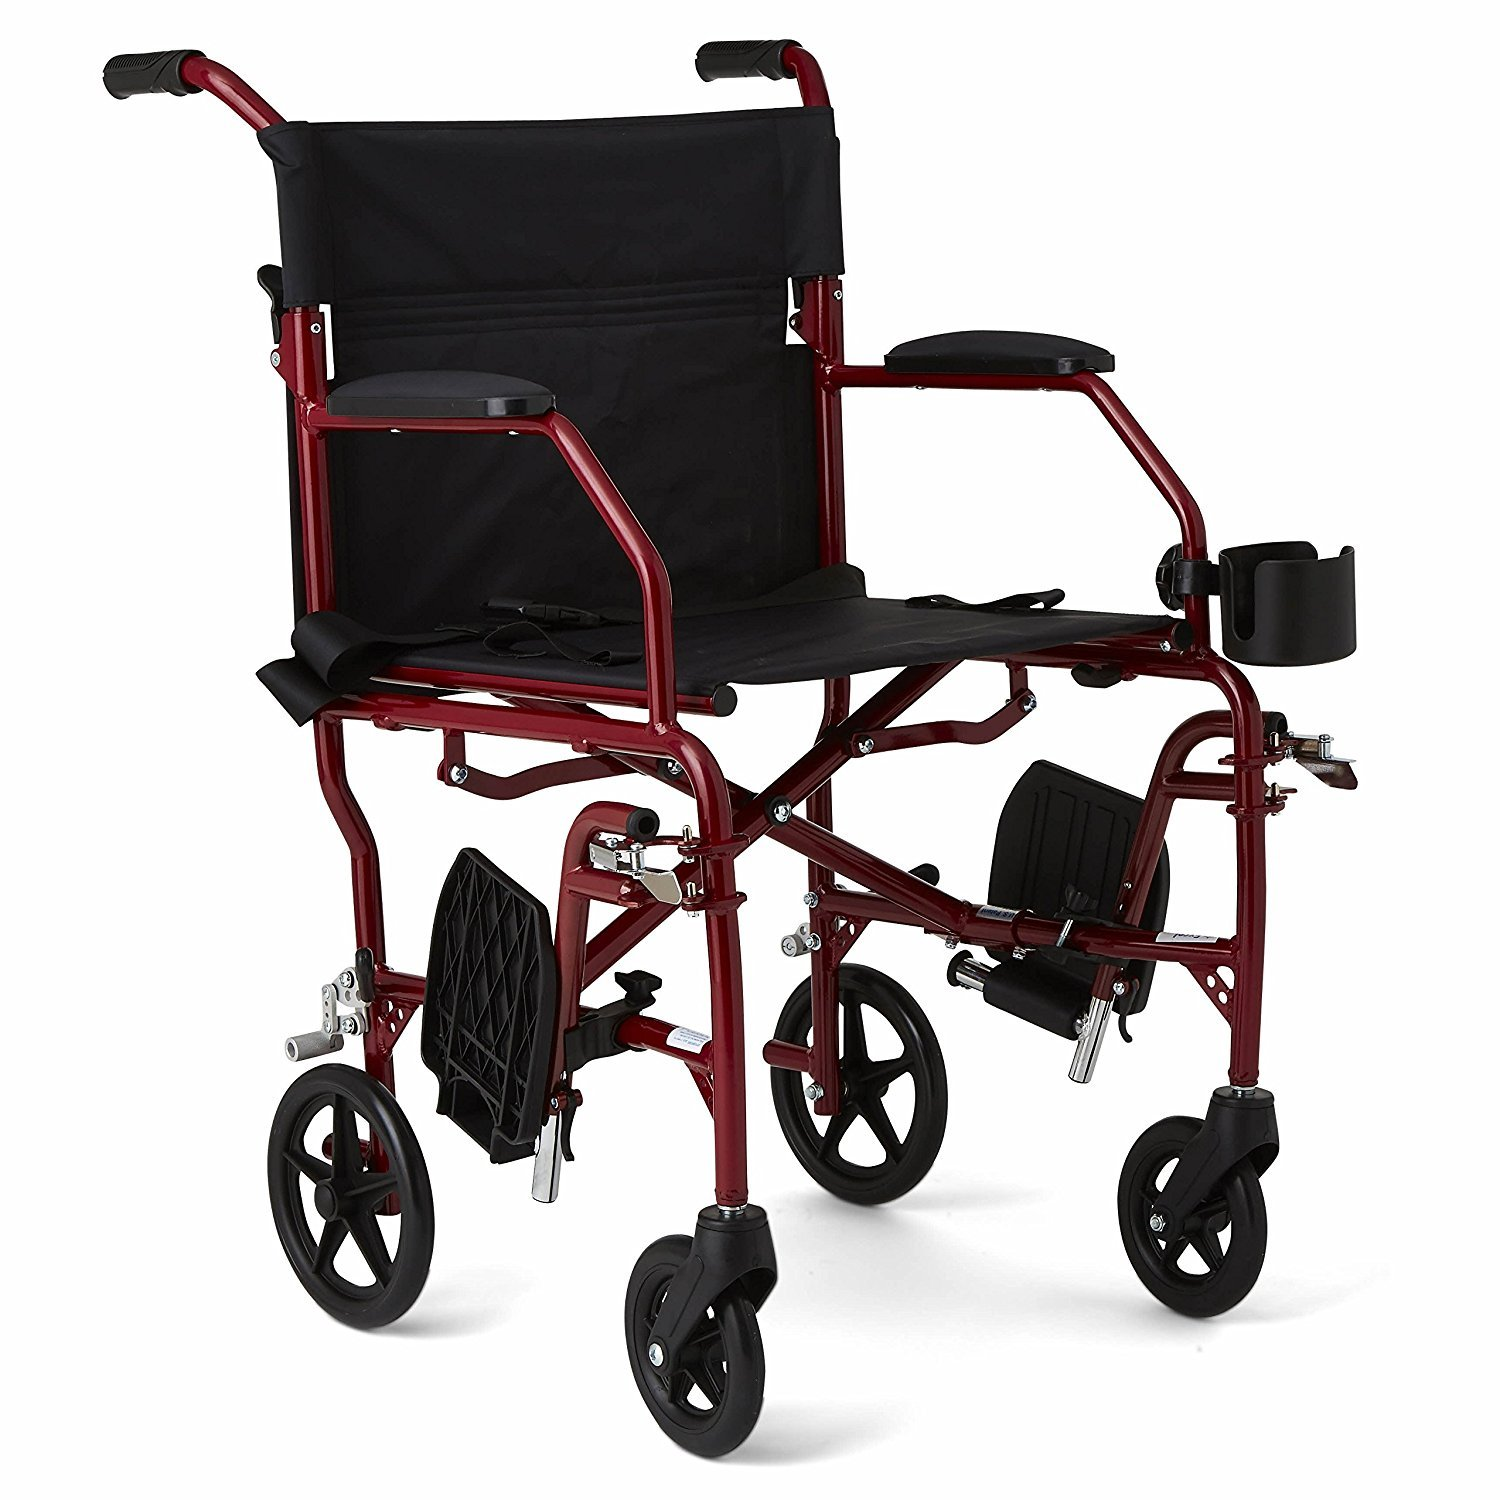 Wheelchair Transport Chair 19'' Ultralight With Cup Holder